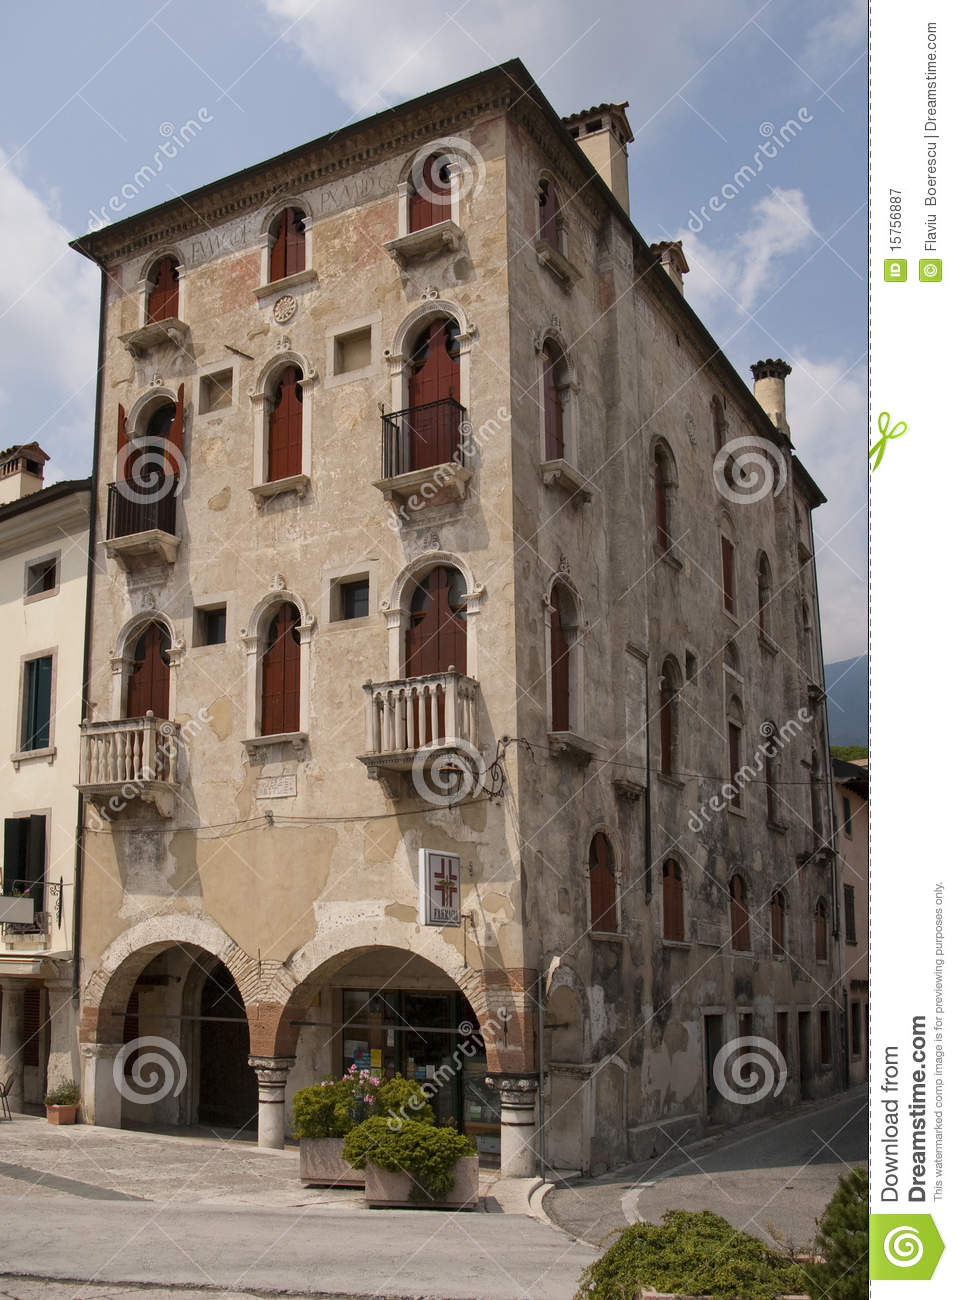 Old Building In Italian Town Royalty Free Stock